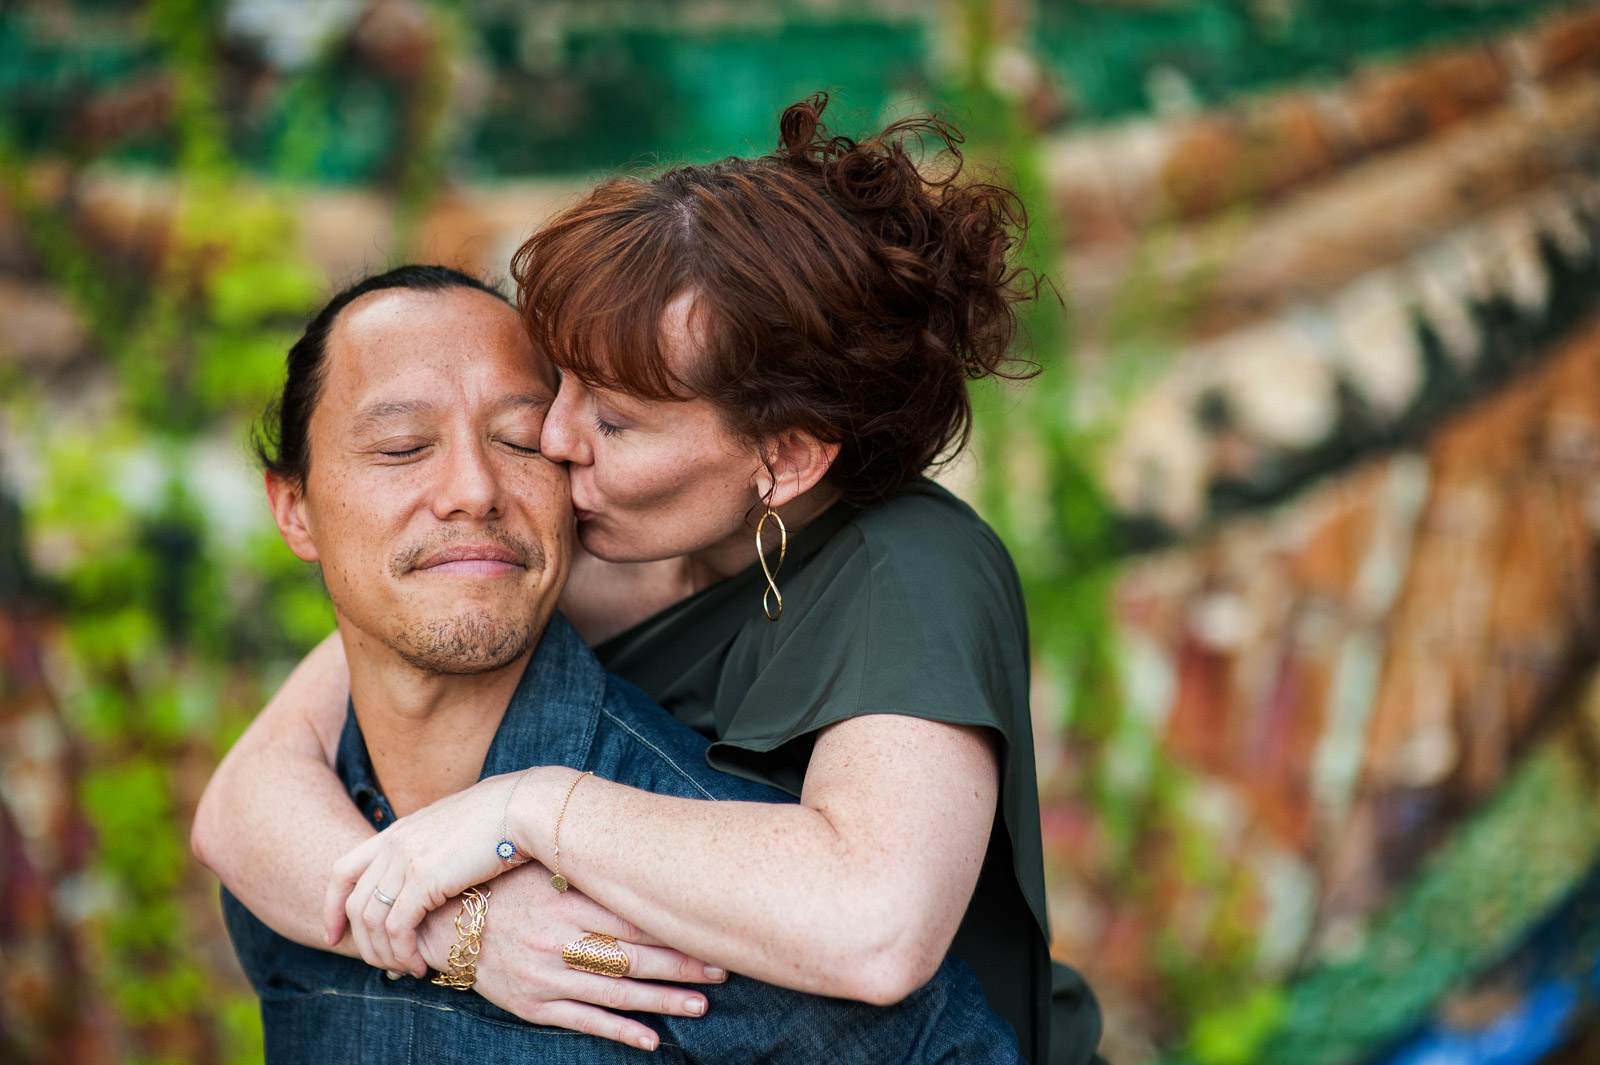 woman kissing man wrapping arms around him